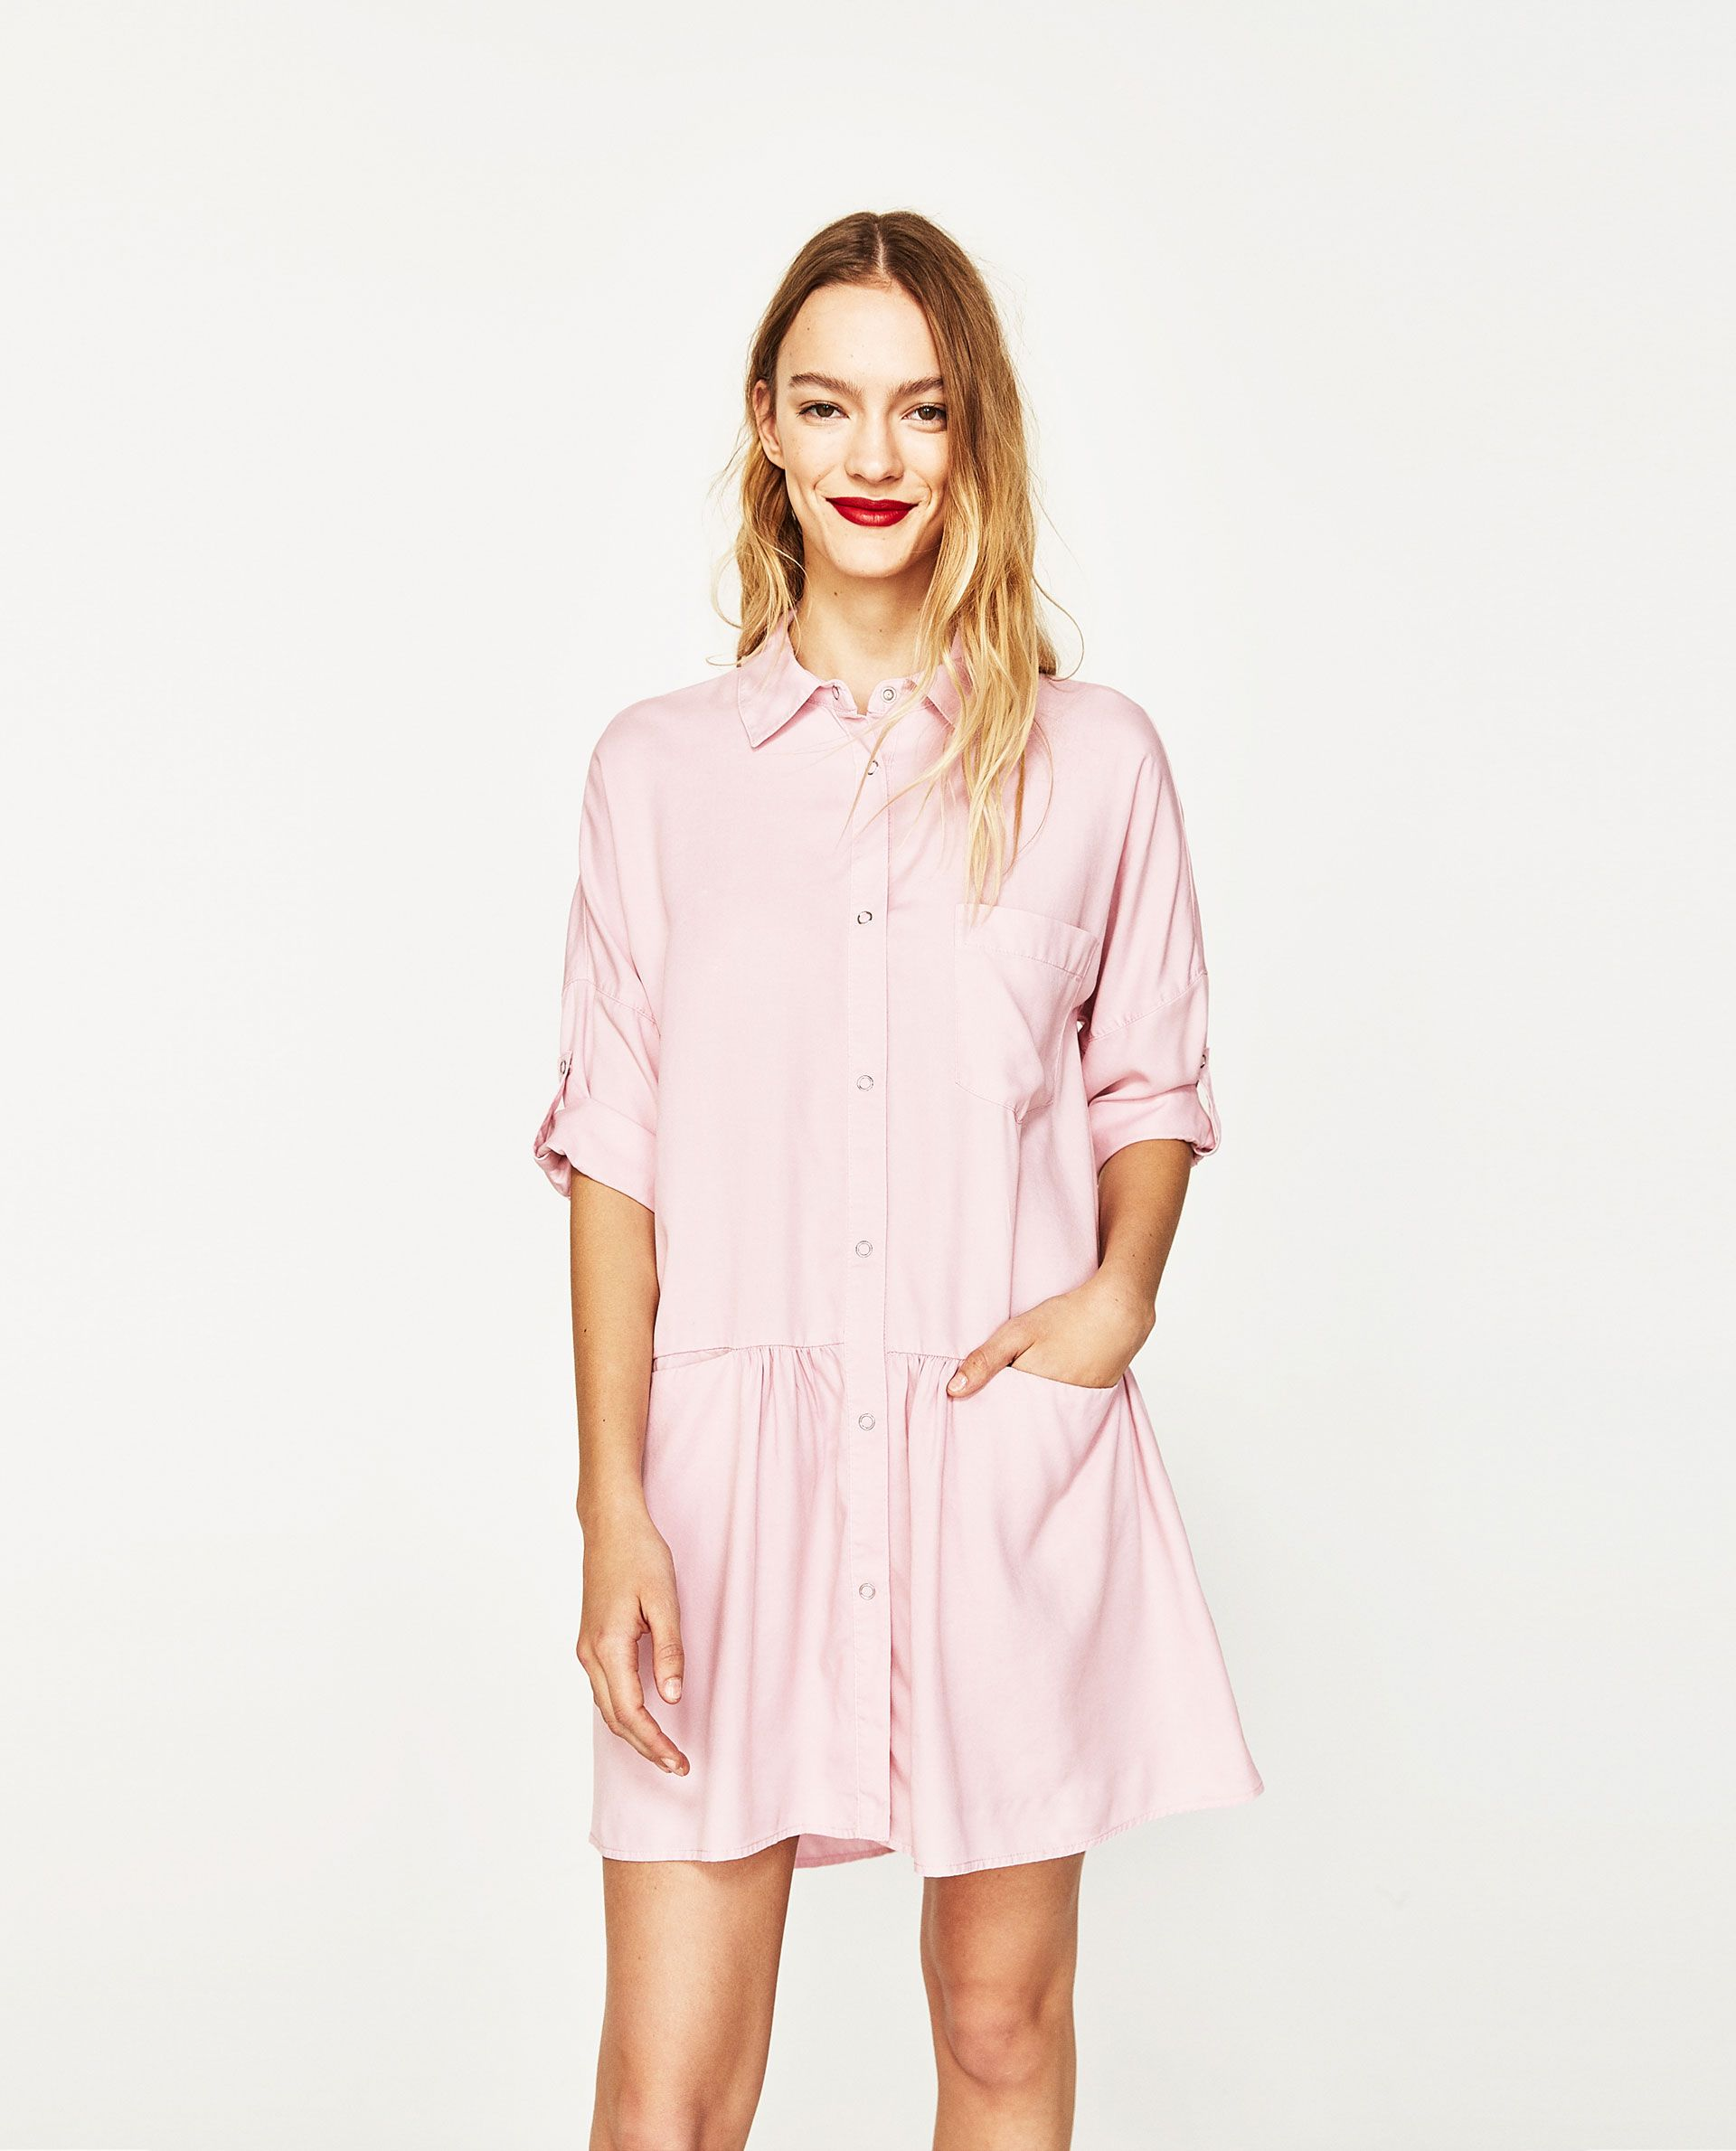 7b12ce15 Image 2 of SHIRT DRESS WITH FRILL from Zara | My Style in 2019 ...